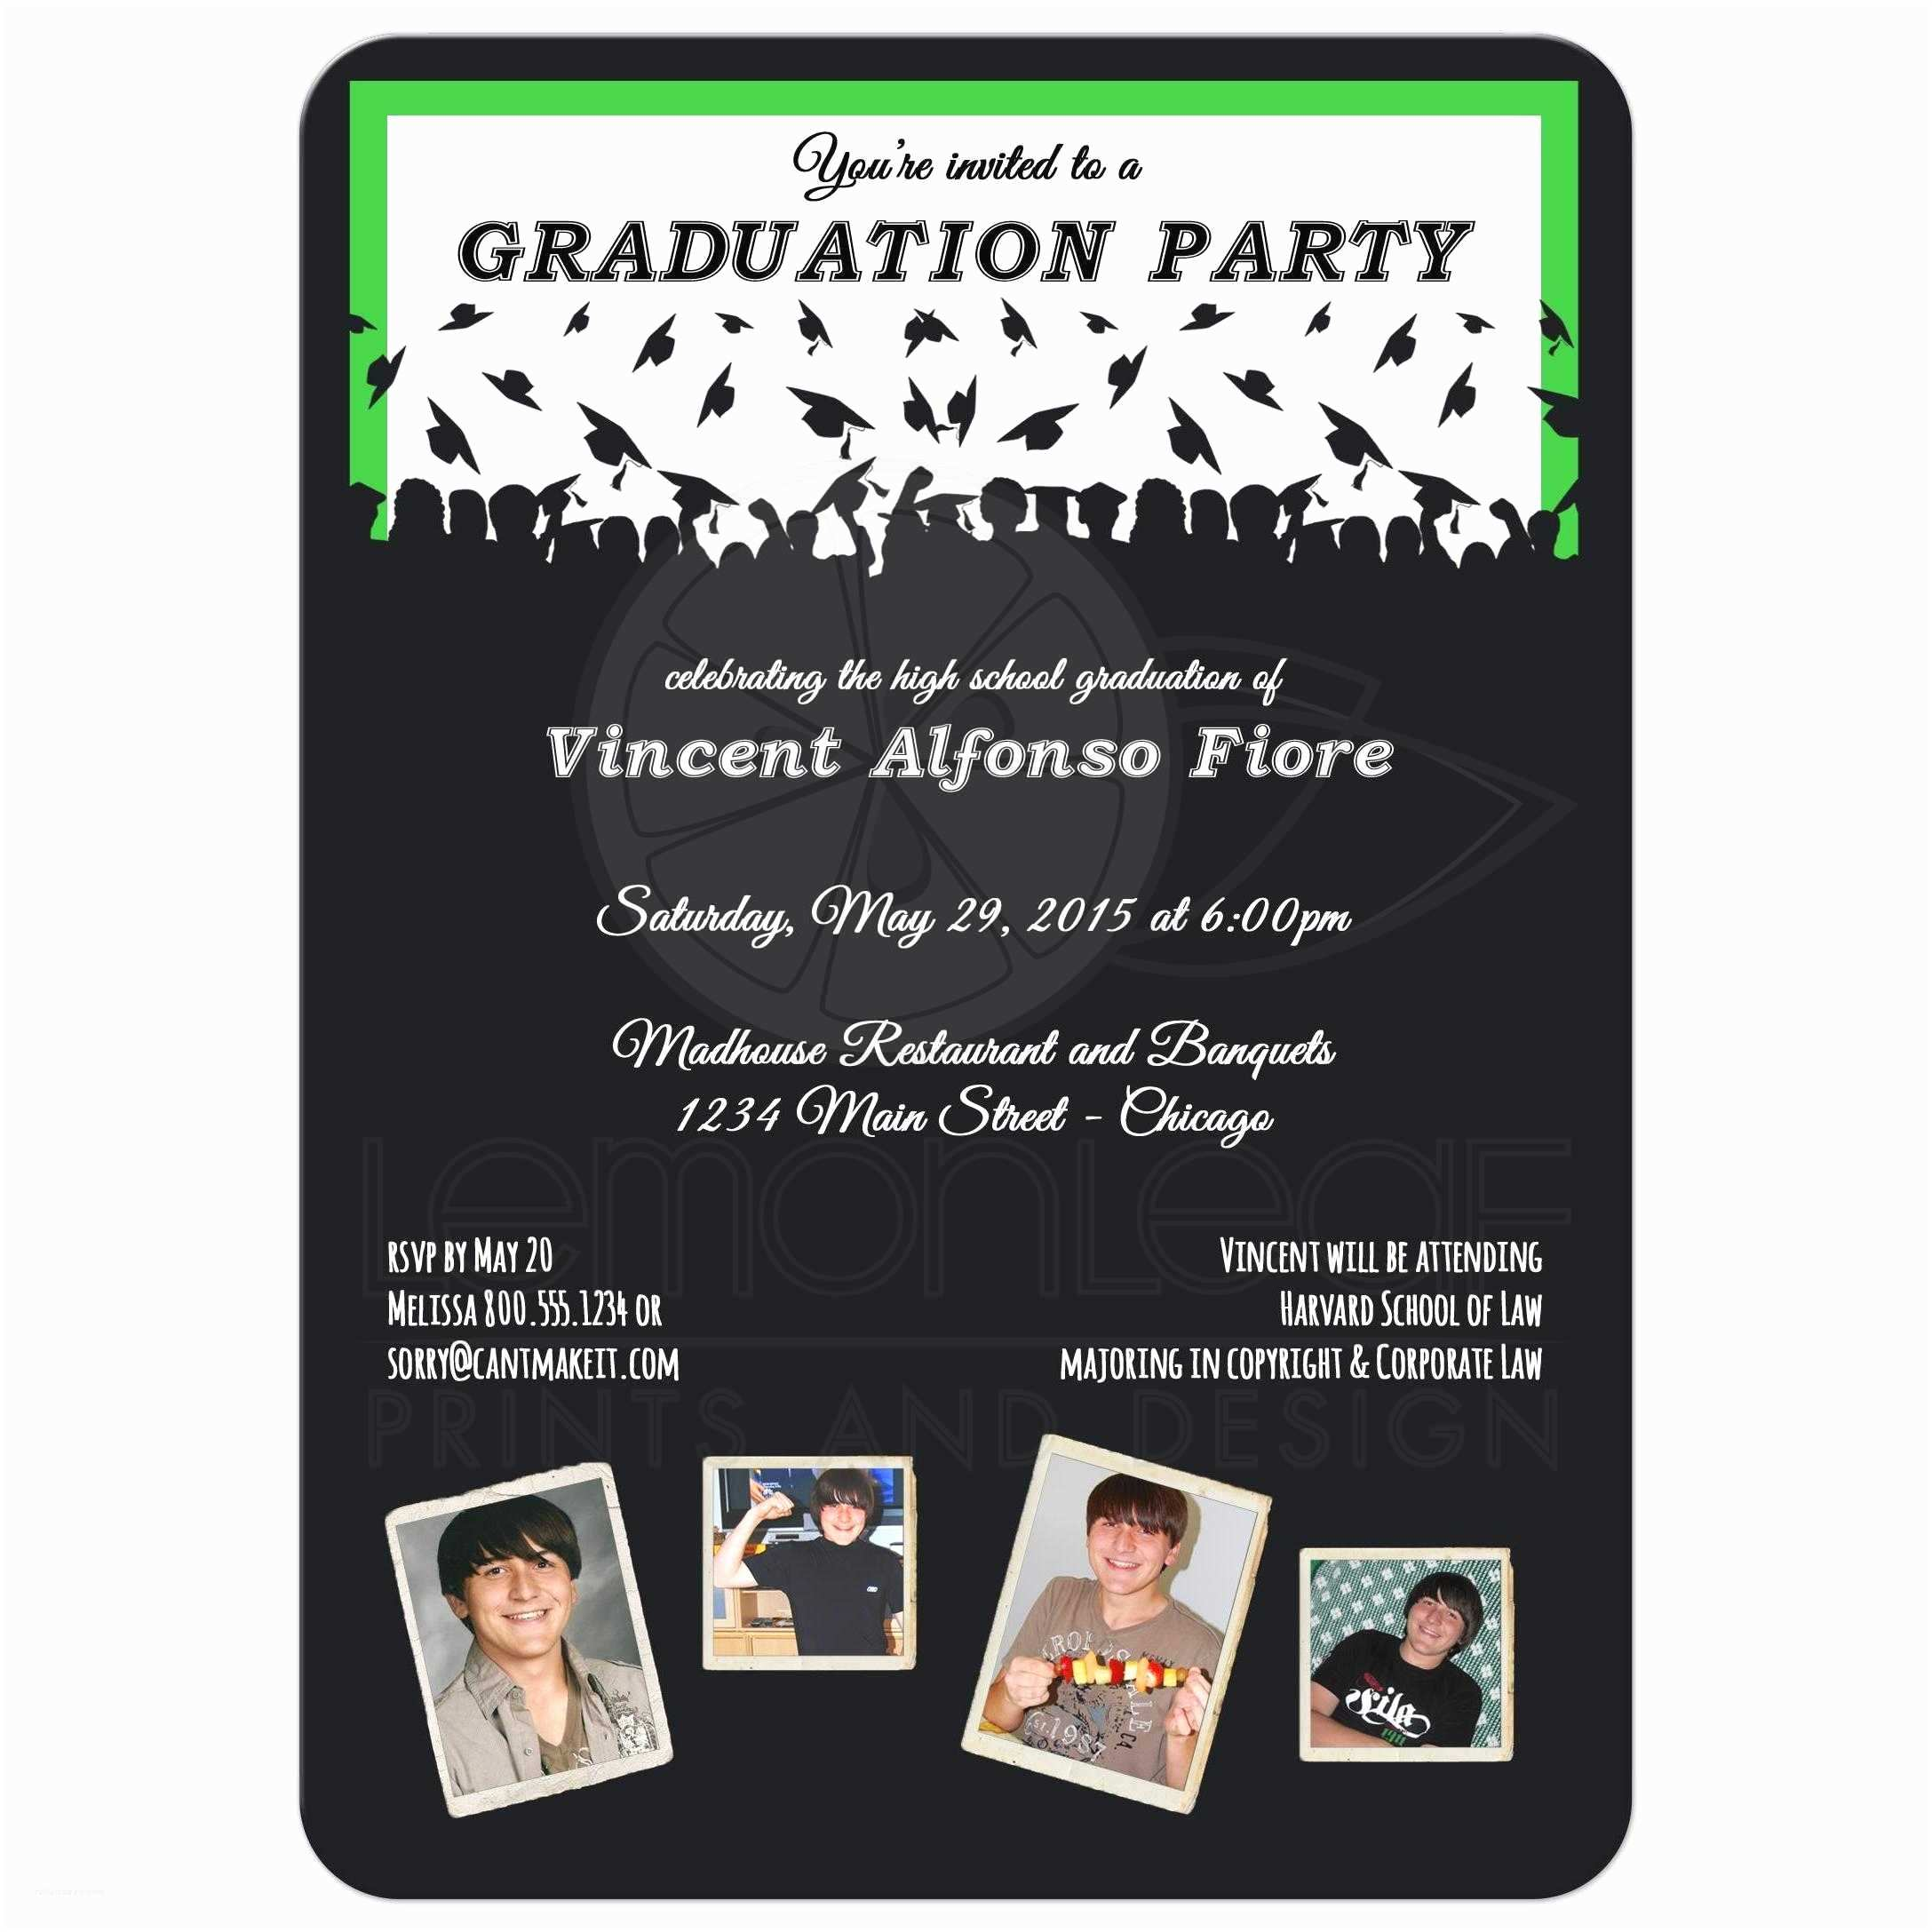 Photo Graduation Party Invitations Cute Black and Green Silhouette Graduation Party